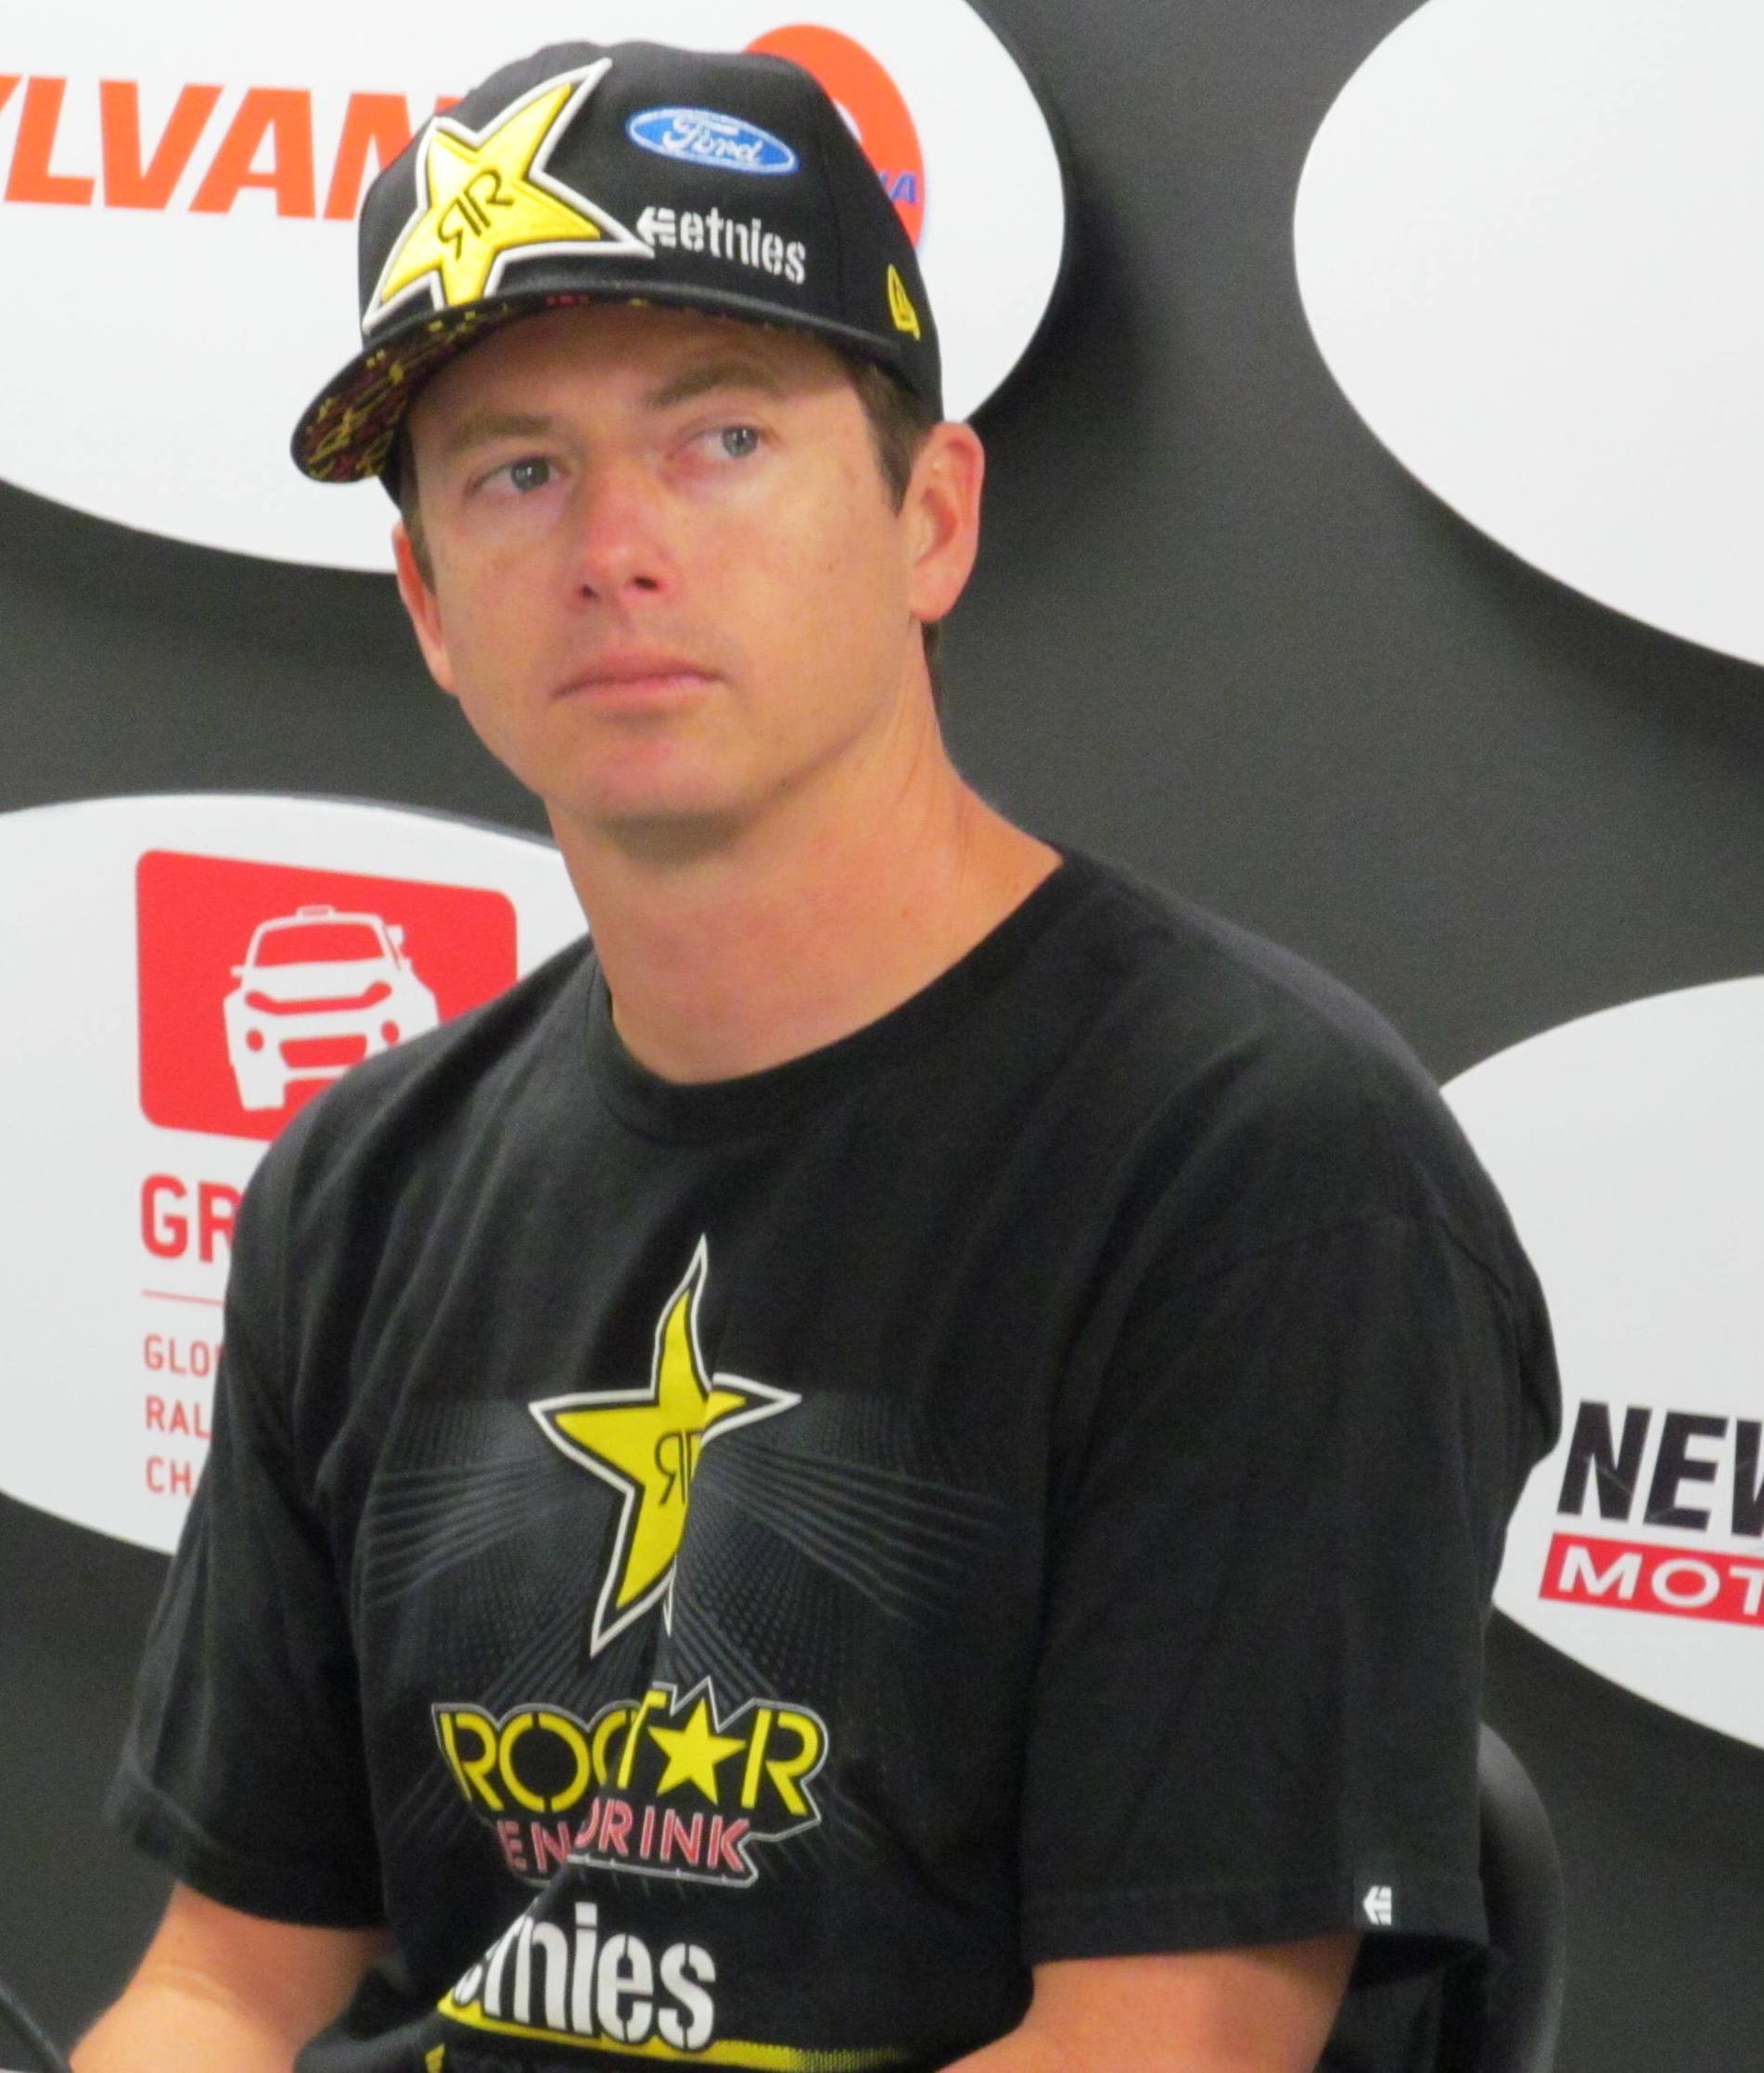 Tanner Foust, Global Rally Cross Racer, Happy With NASCAR